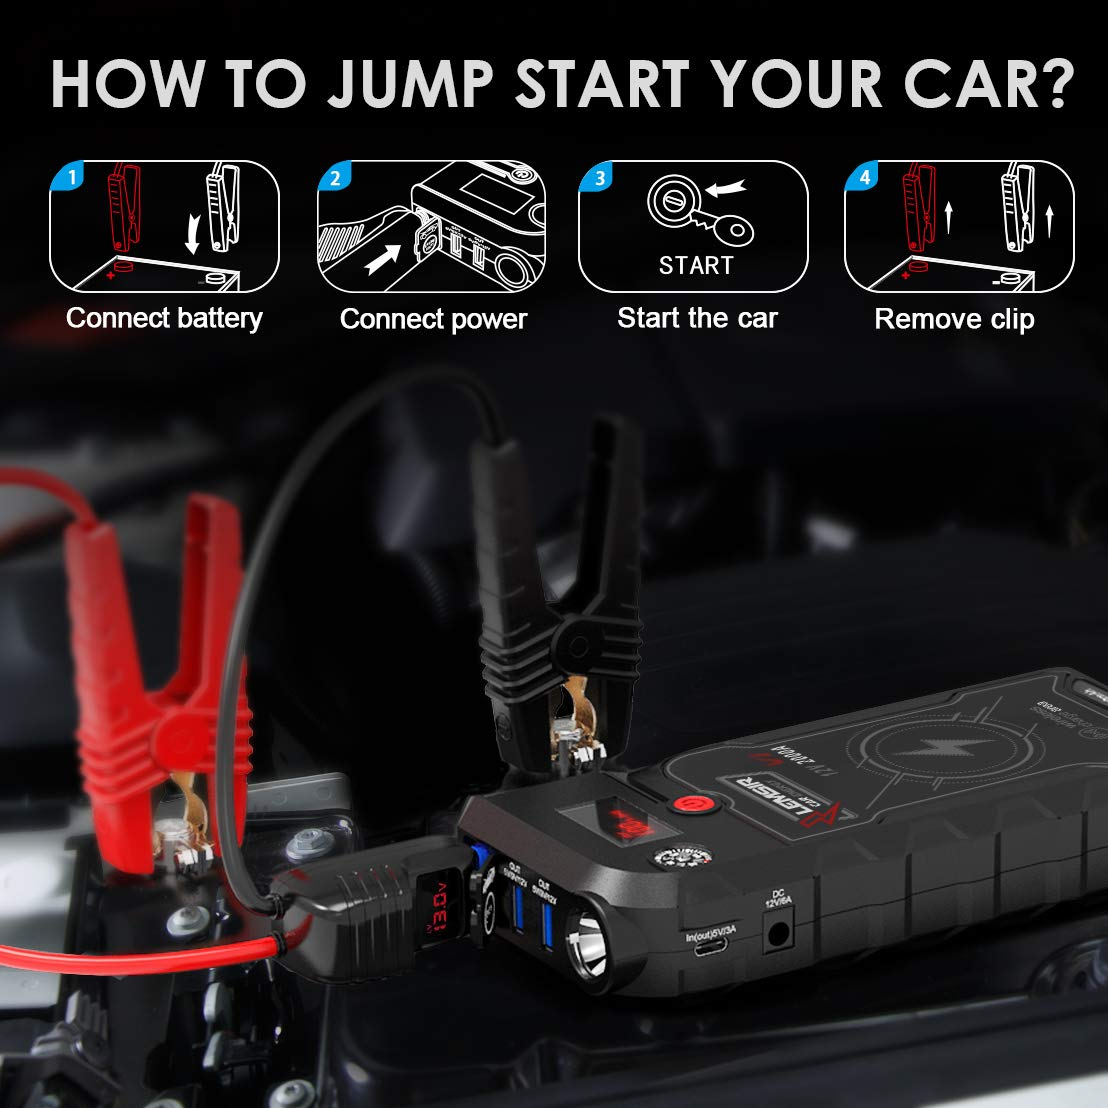 LEMSIR V1 QDSP 2000A Peak 21000mAh Car Jump Starter, Portable 12V Auto Battery Jumper up to 8.0L Gas, 8.0L Diesel, Booster Power Pack with Smart Jumper Cables,Wireless Charger by LEMSIR (Image #9)